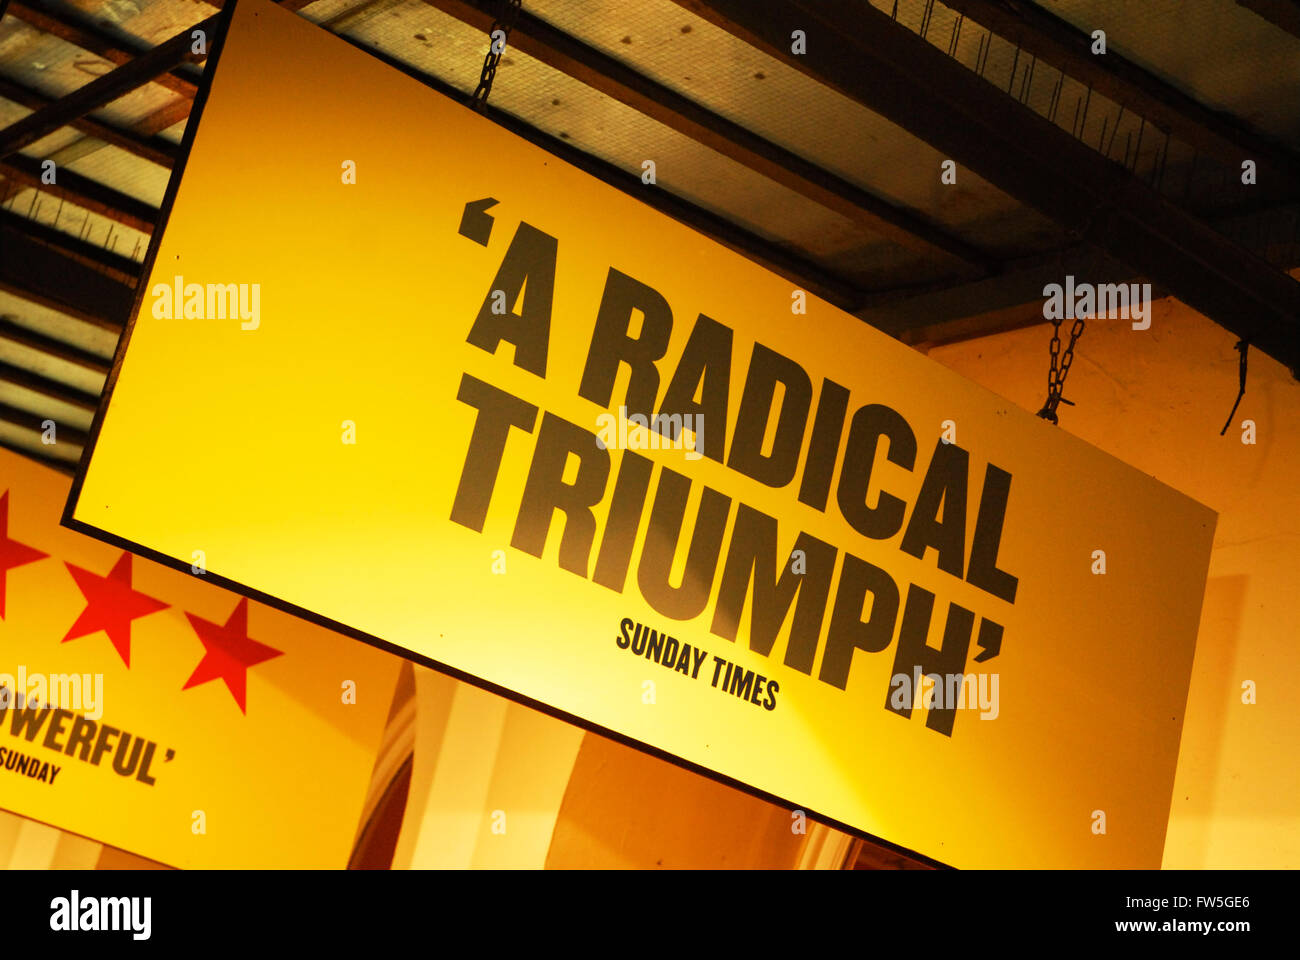 Theatre Sign - (A radical triunph) West End Theatre, London. - Stock Image